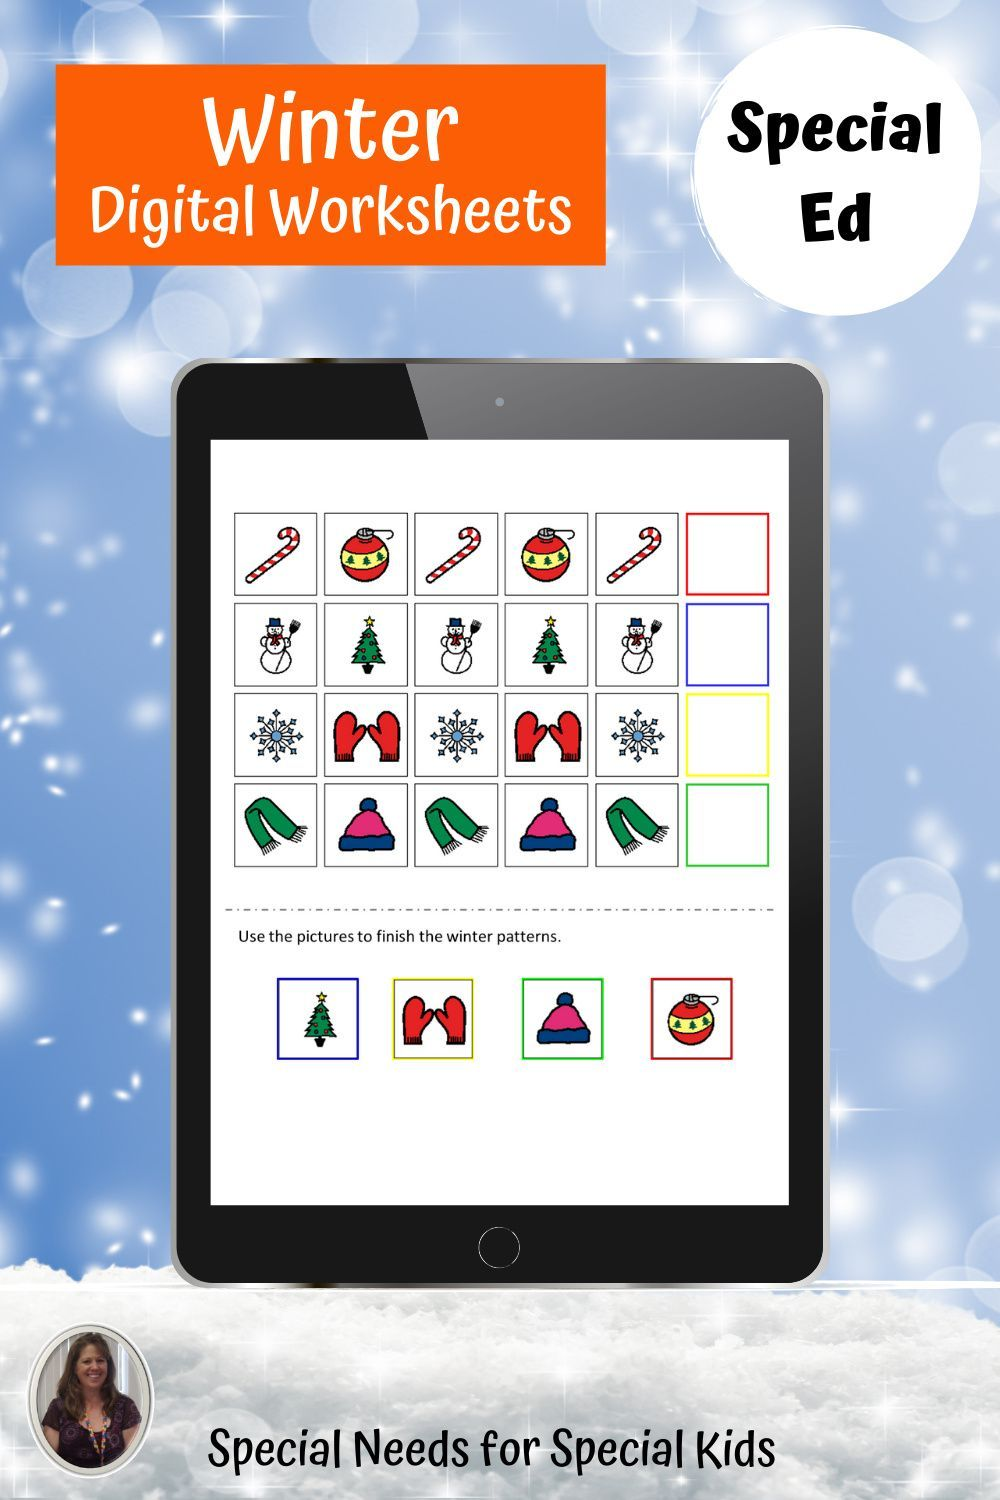 Winter Digital Worksheets For Special Education Distance Le In 2021 Elementary Special Education Activities Special Education Activities Special Education Elementary [ 1500 x 1000 Pixel ]